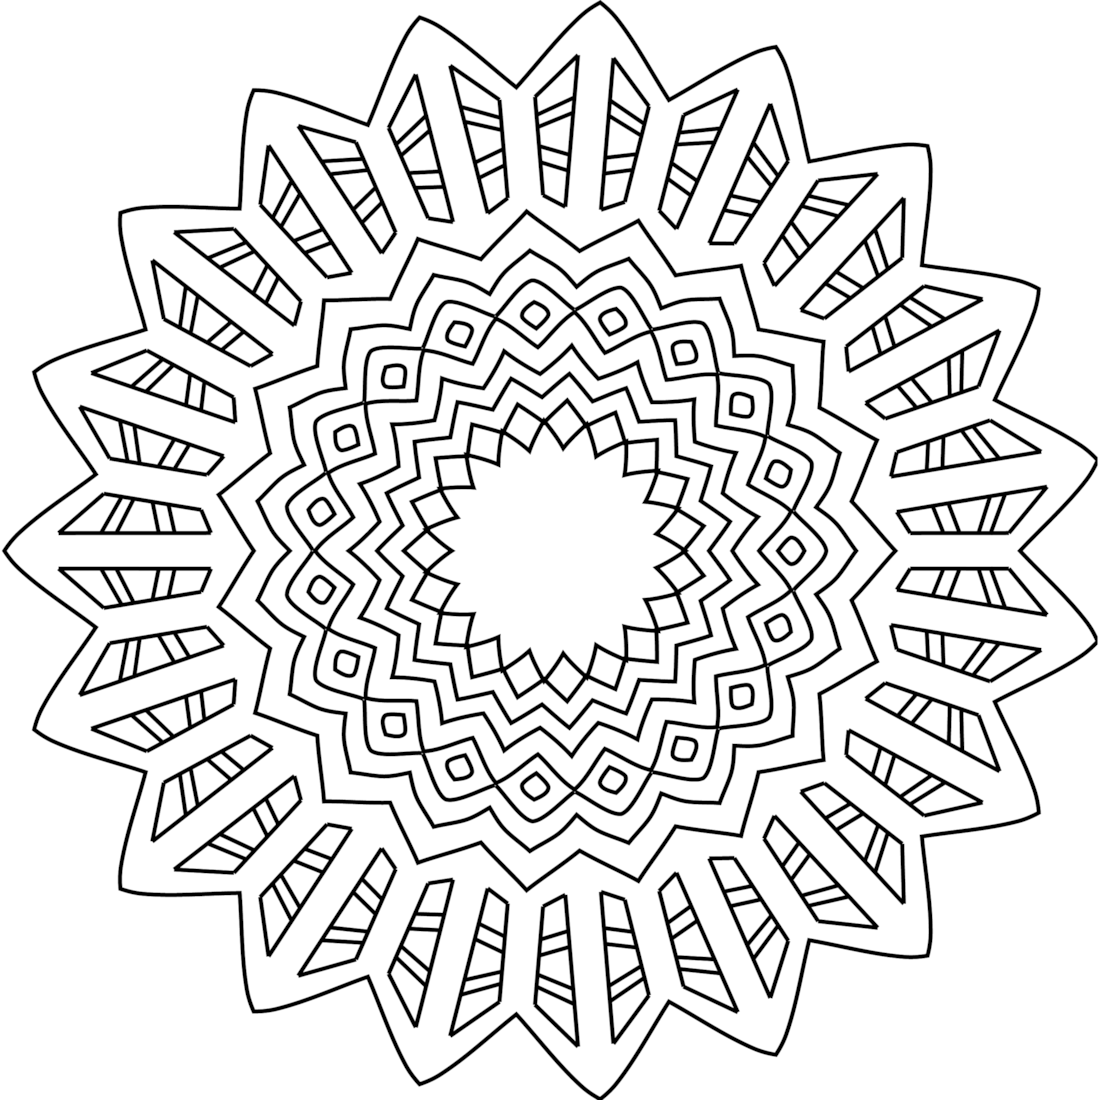 Summertime Madness Coloring Page